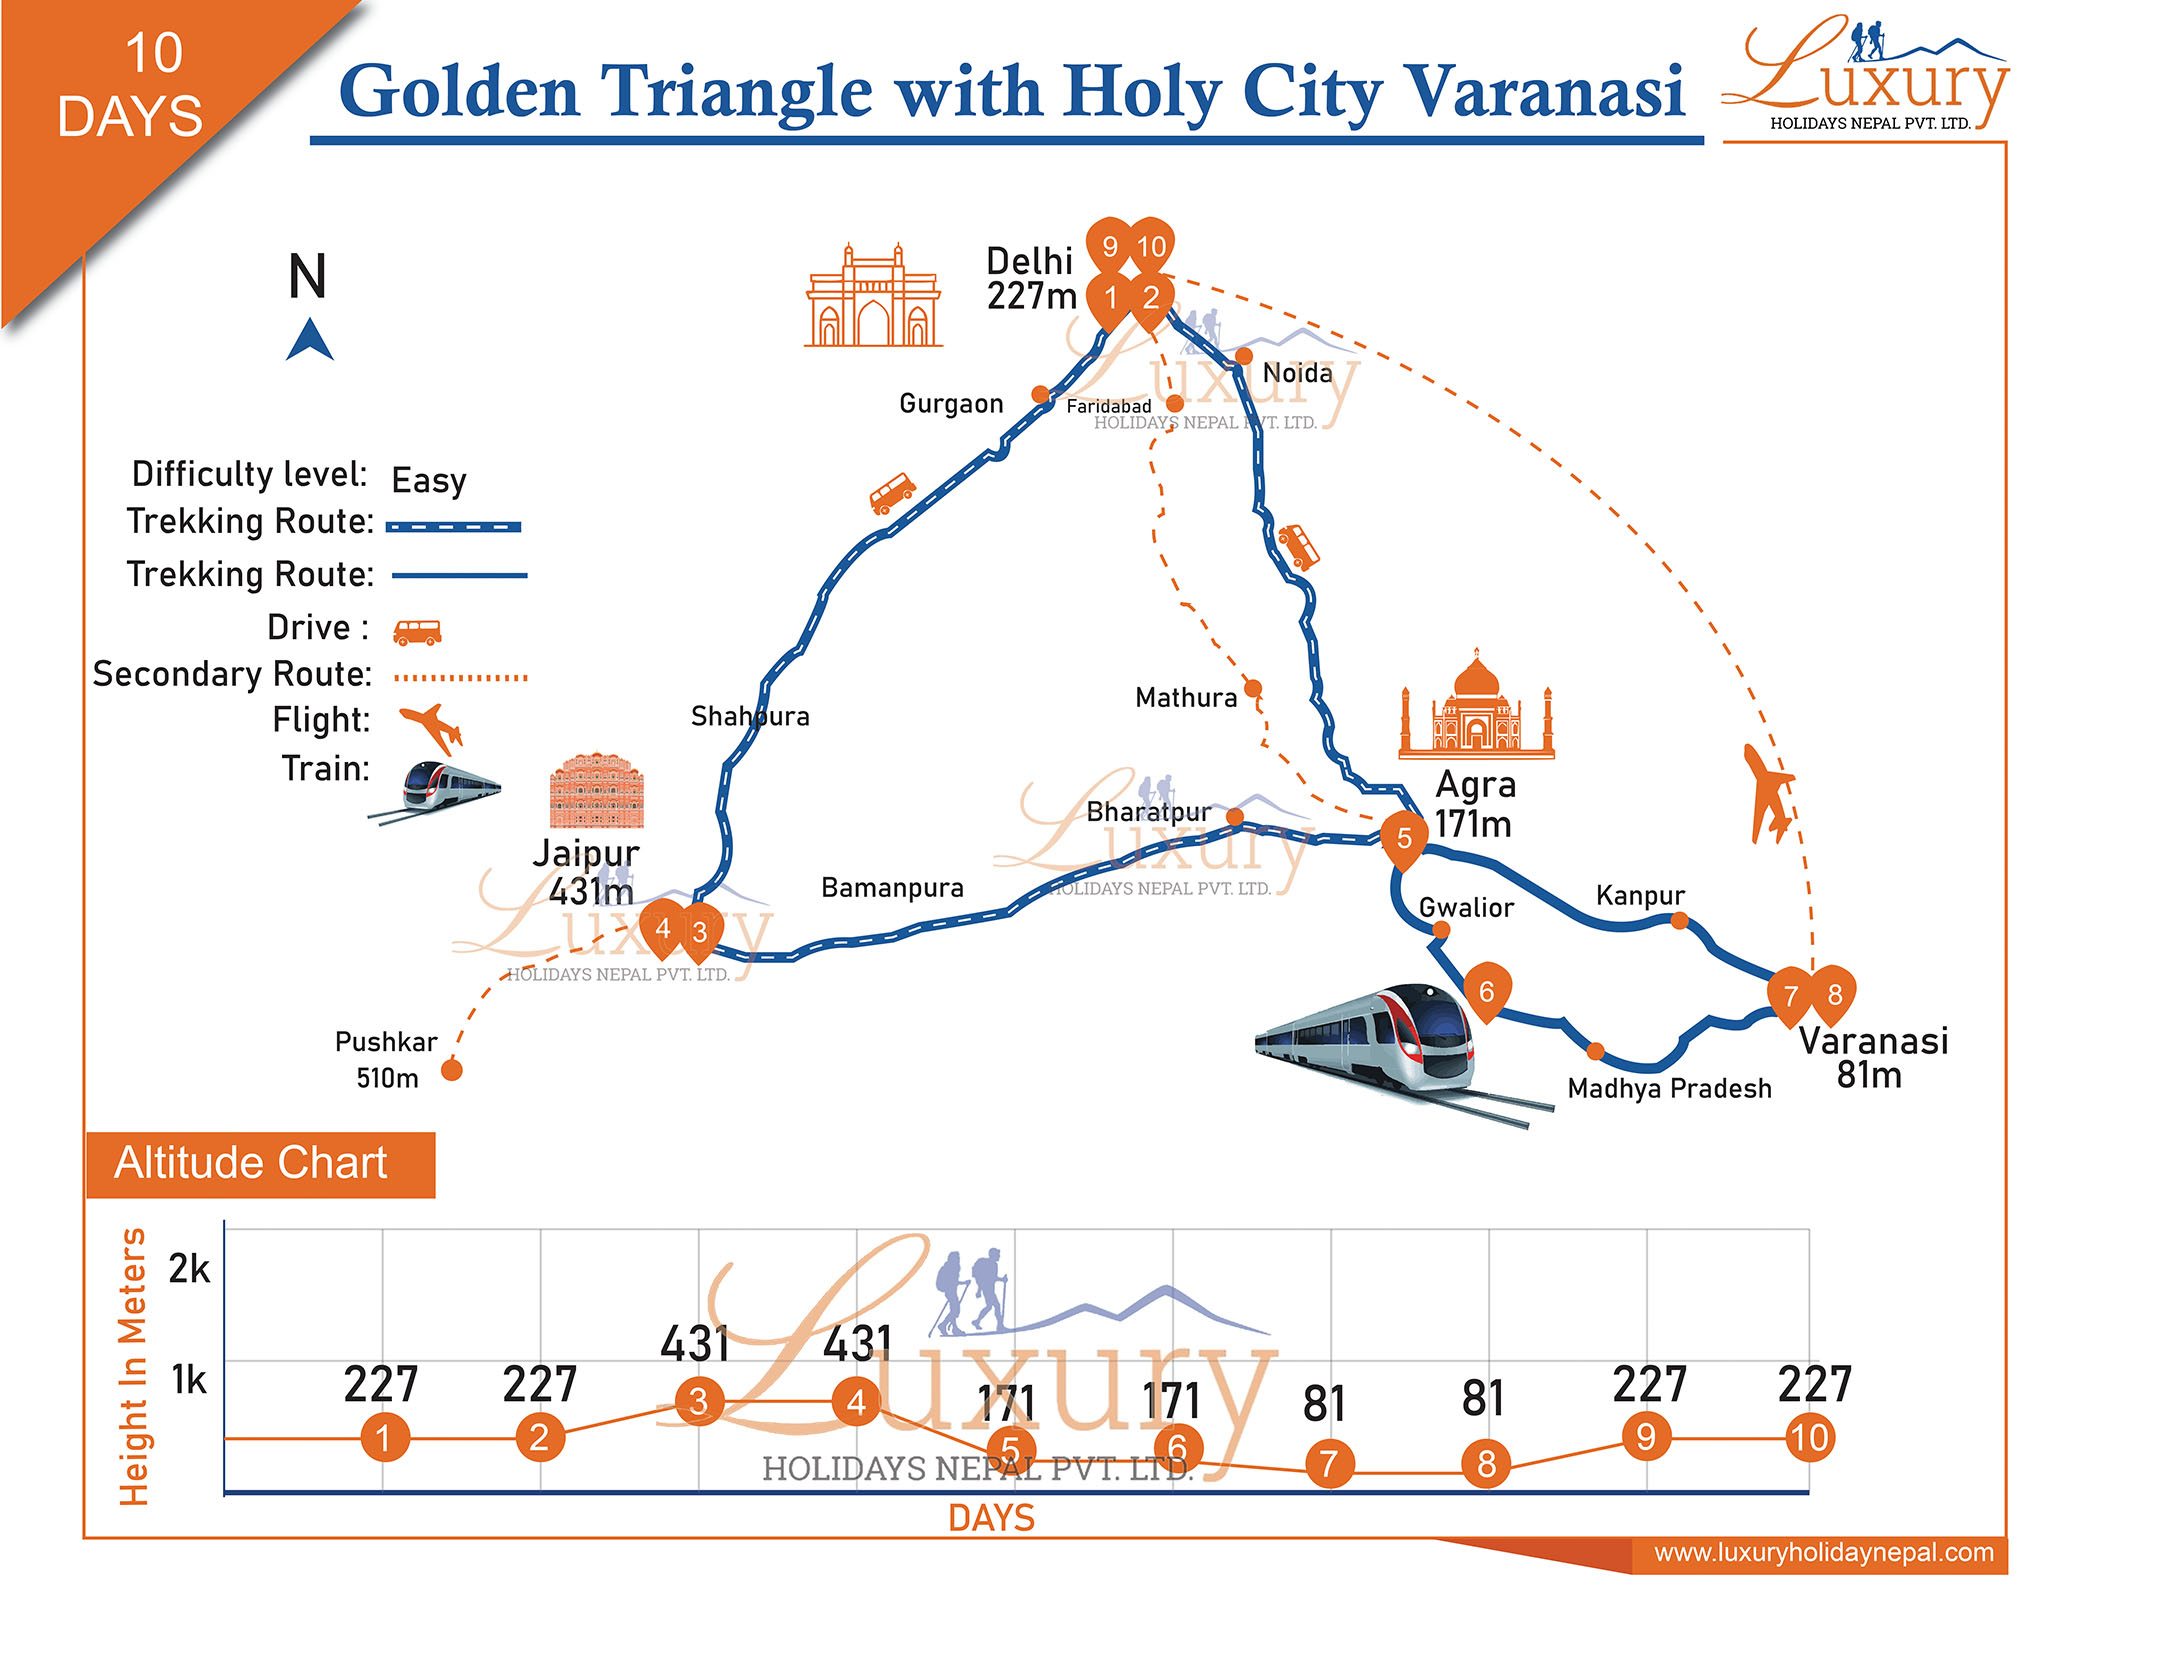 Golden Triangle with Holy city Varanasi Trip Map